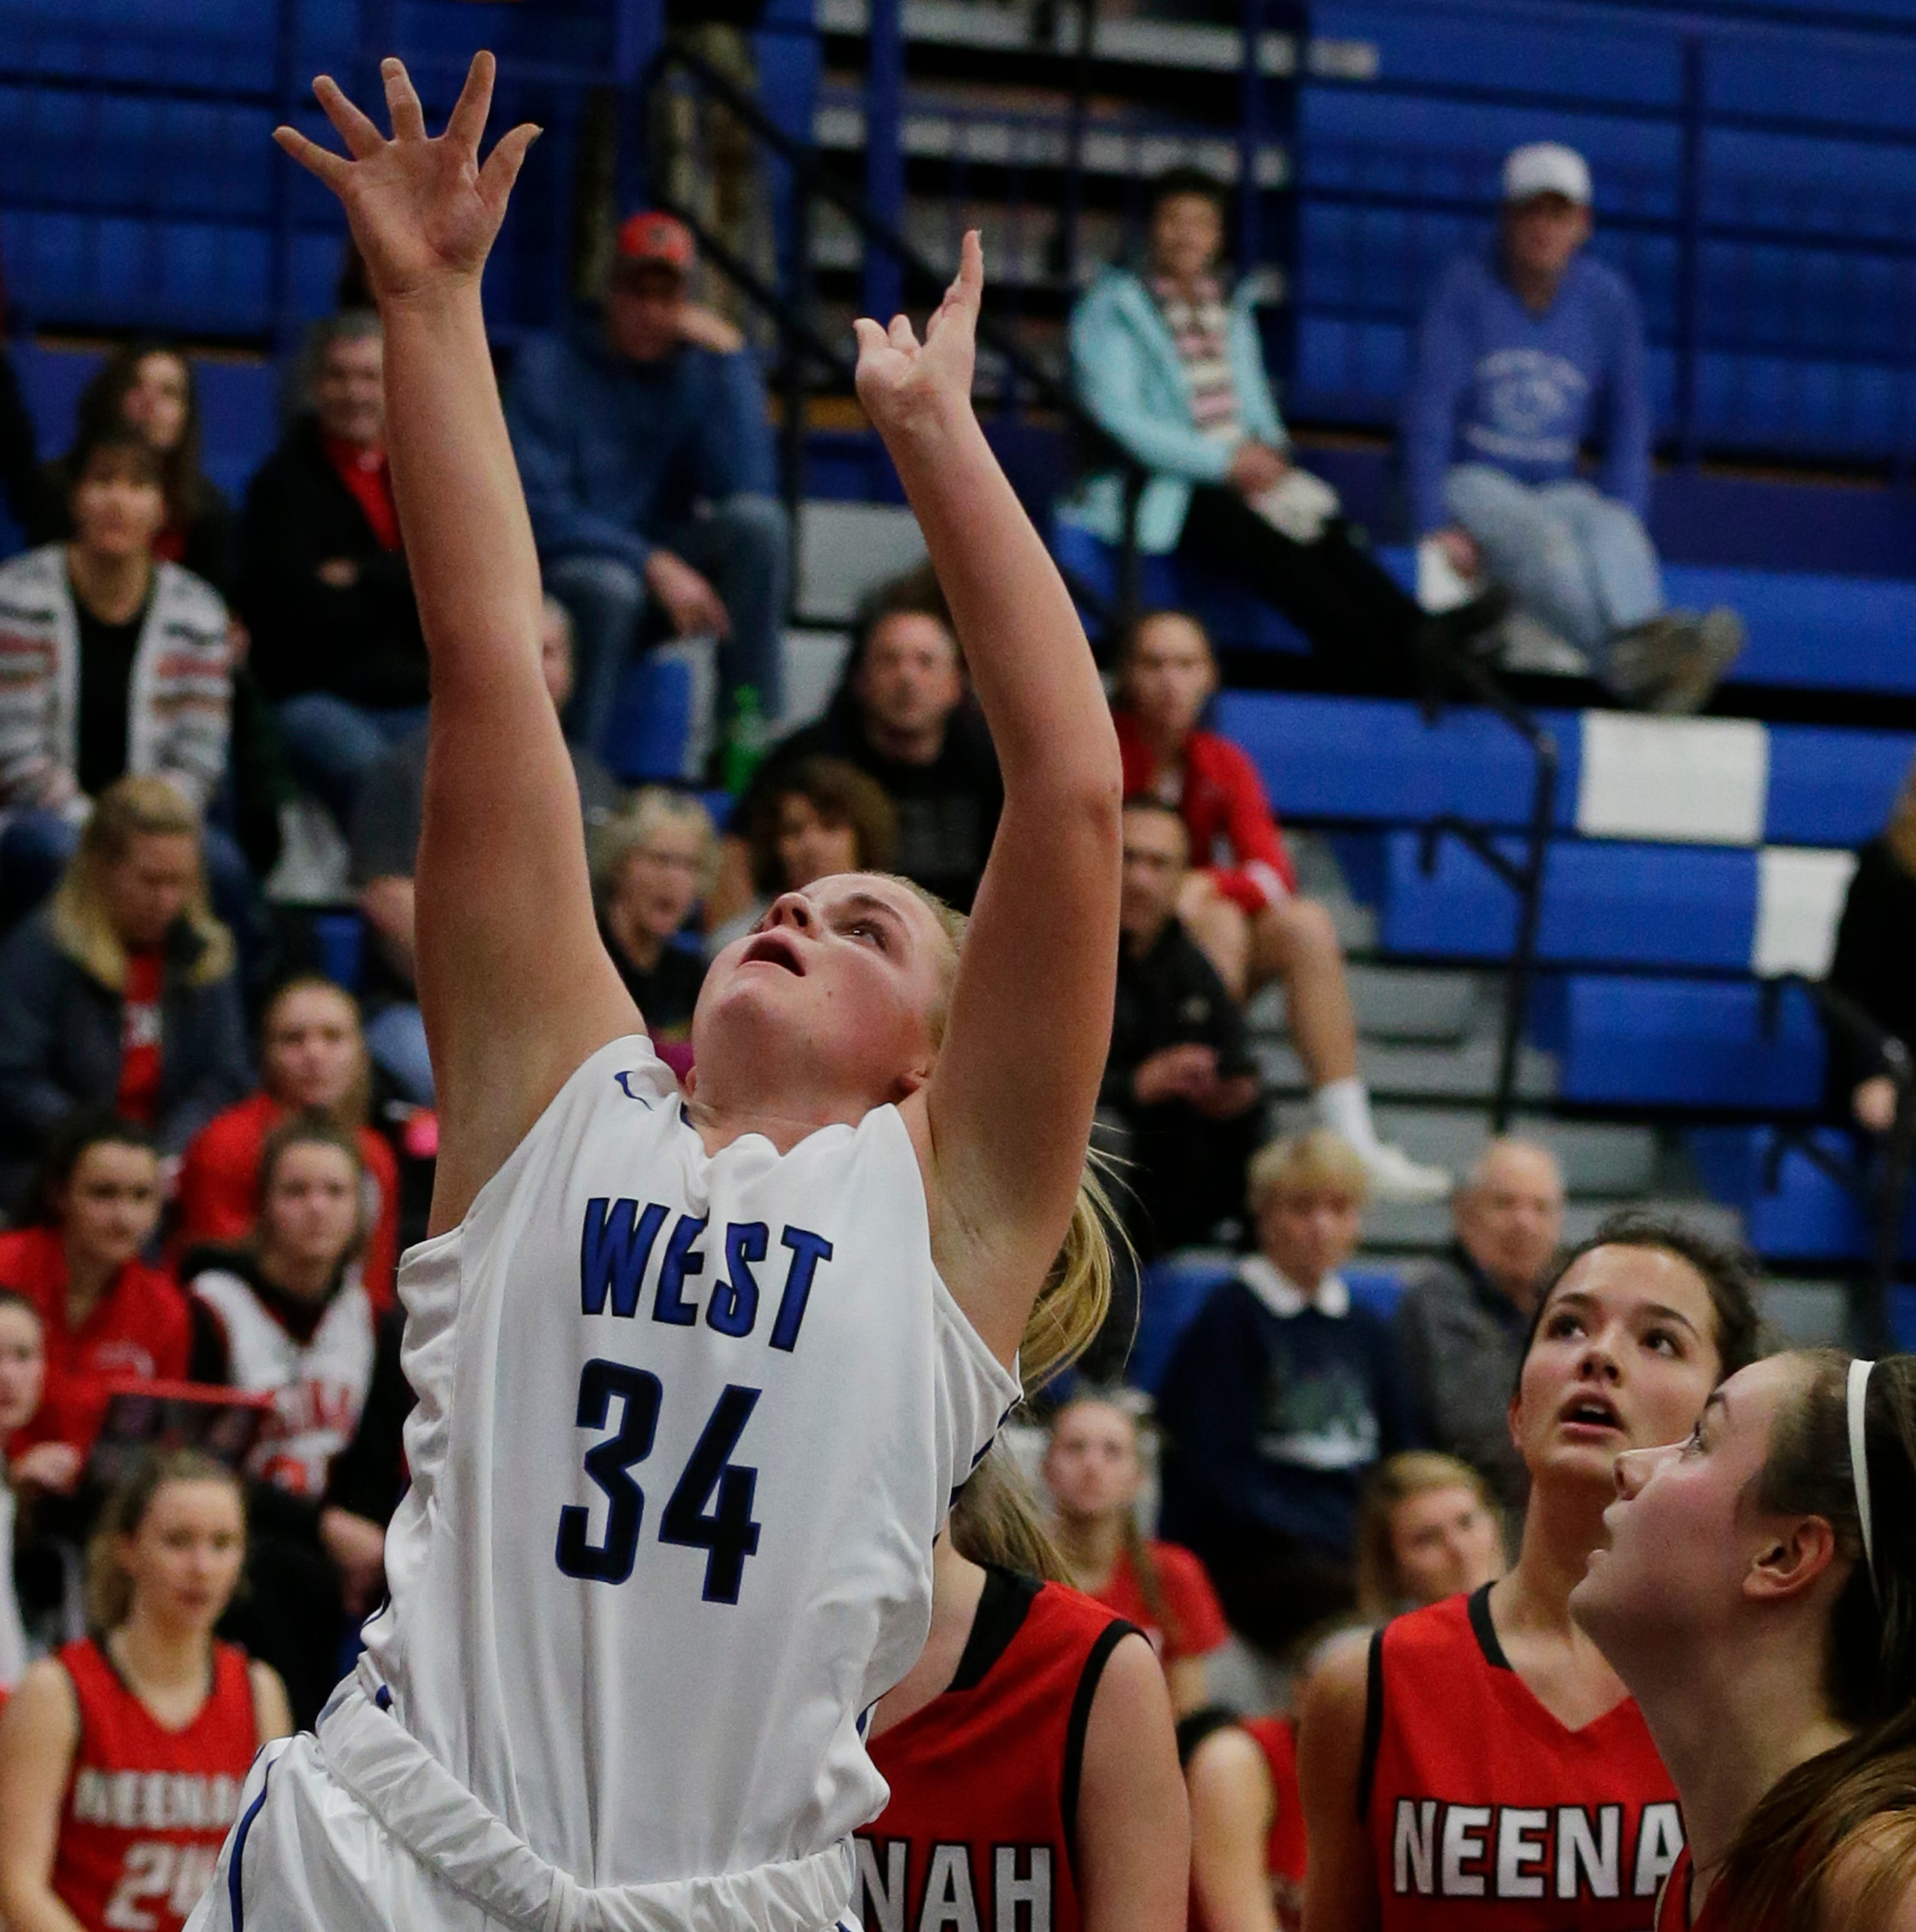 High school girls basketball: New Oshkosh West coach brings revitalization